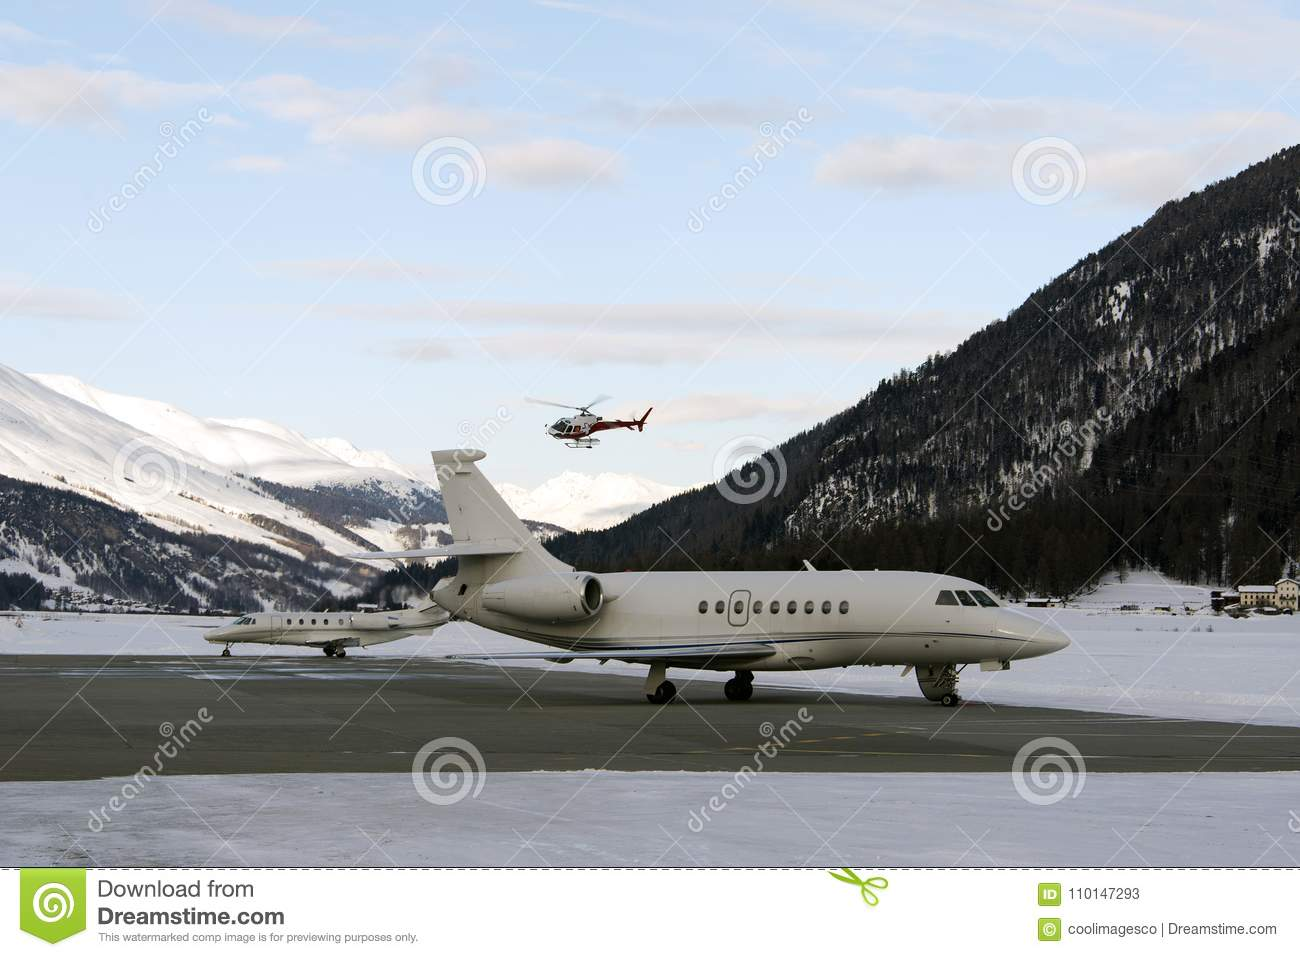 A red helicopter flying over two private jets in the airport of St Moritz Switzerland in winter